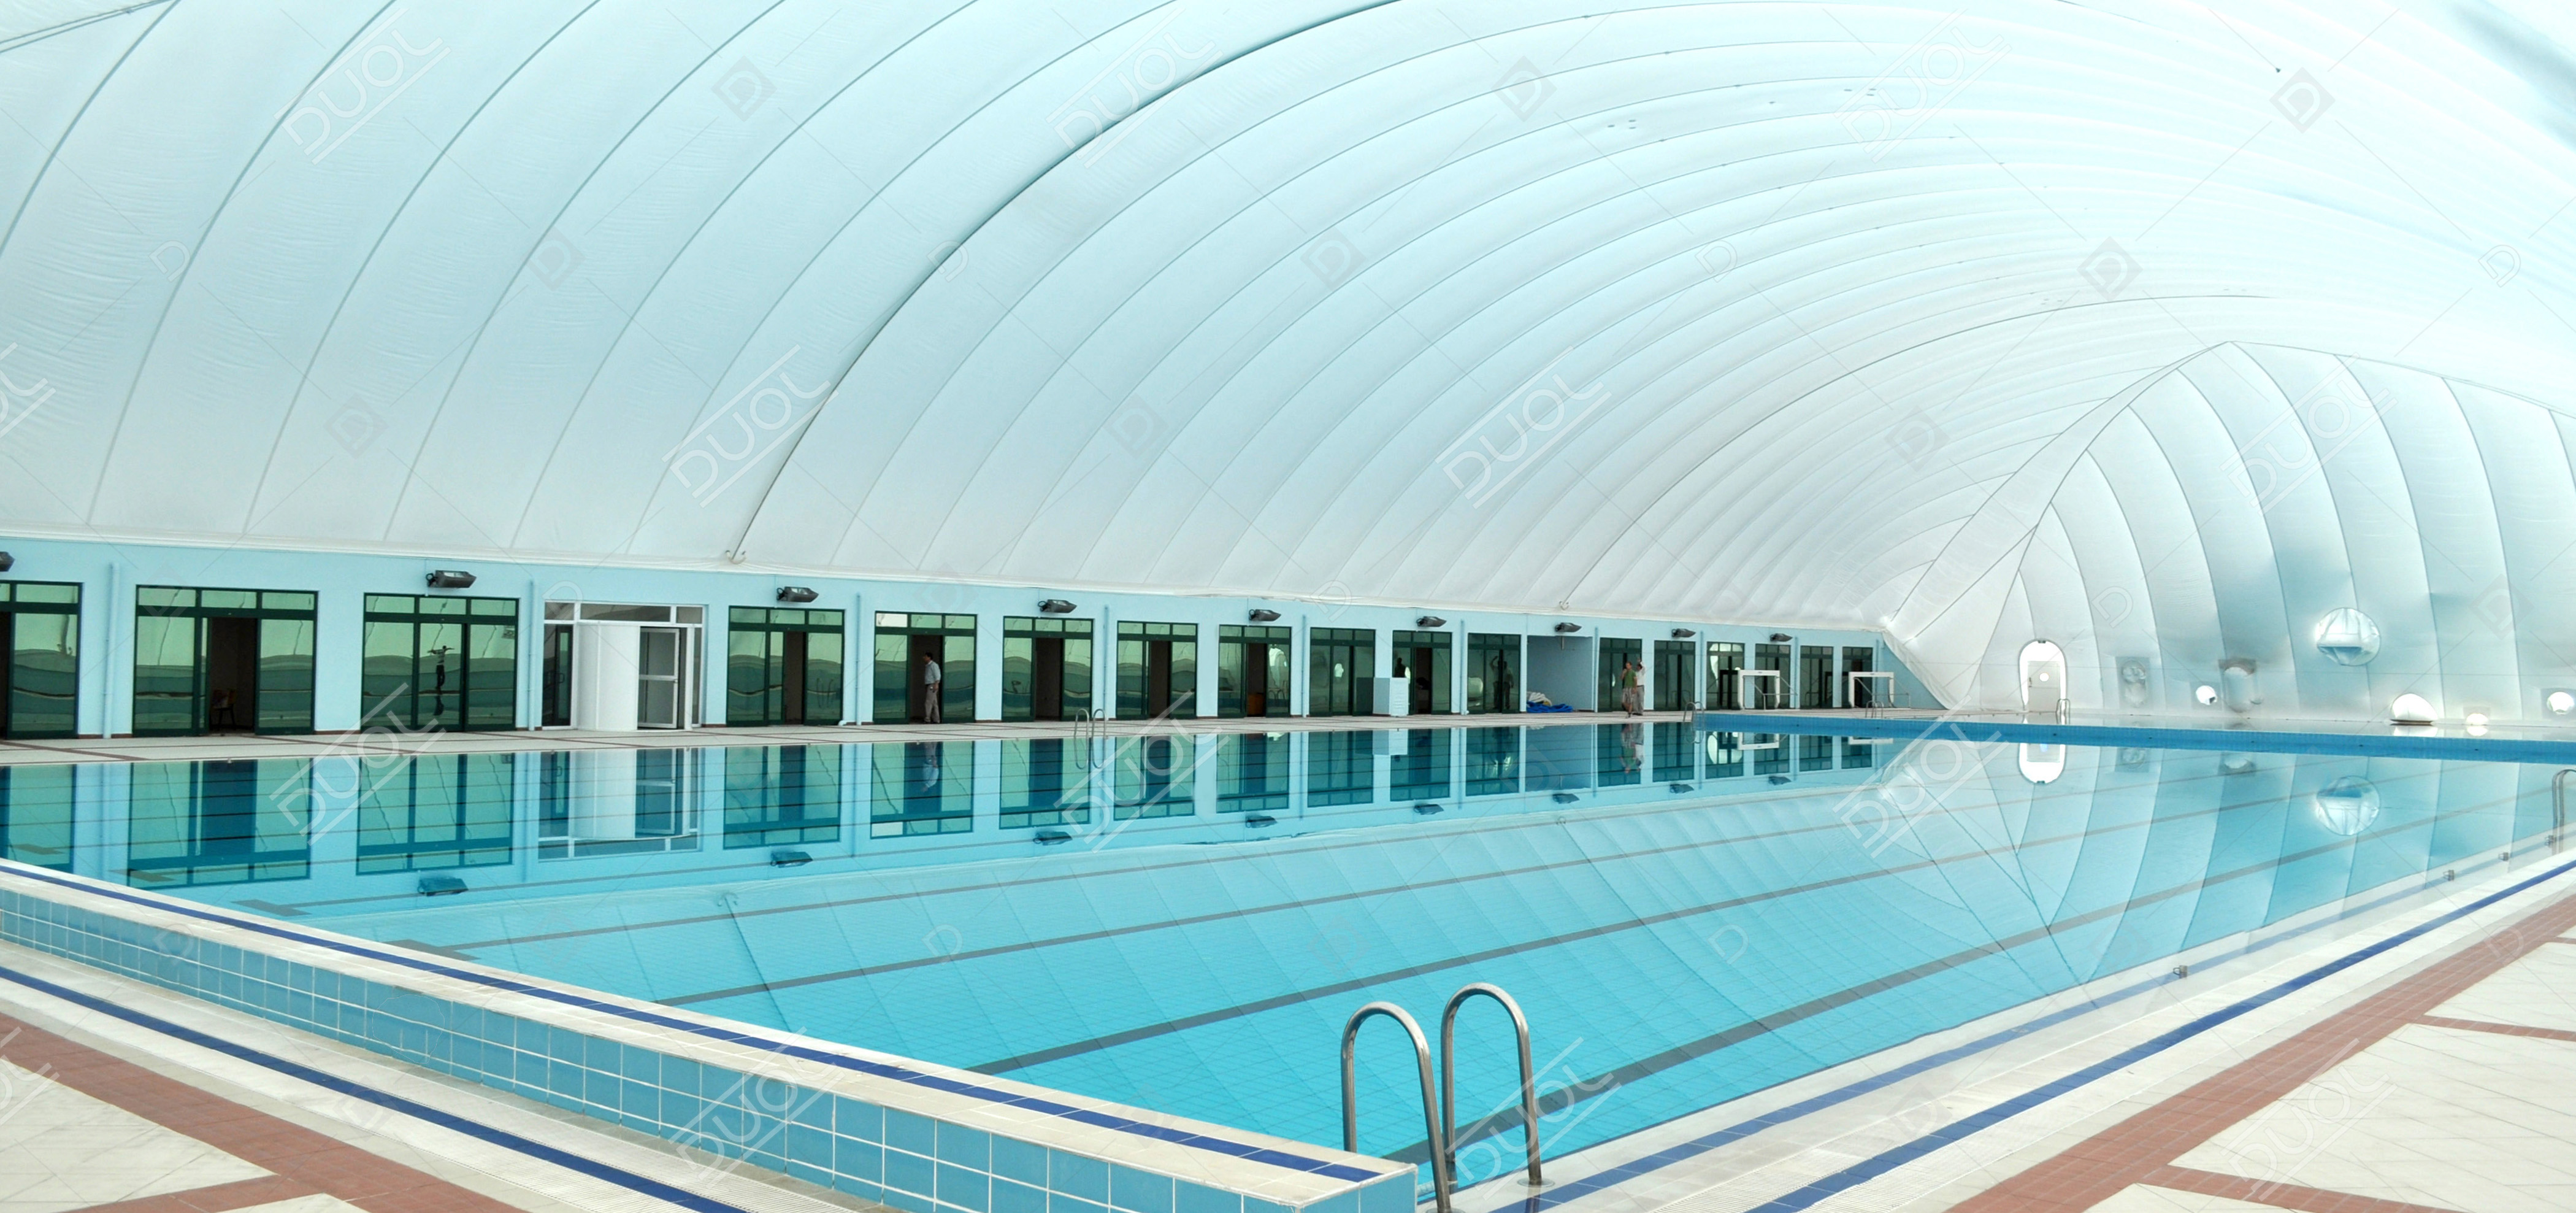 Swimming pool enclosures & domes | Product | DUOL - Air supported ...